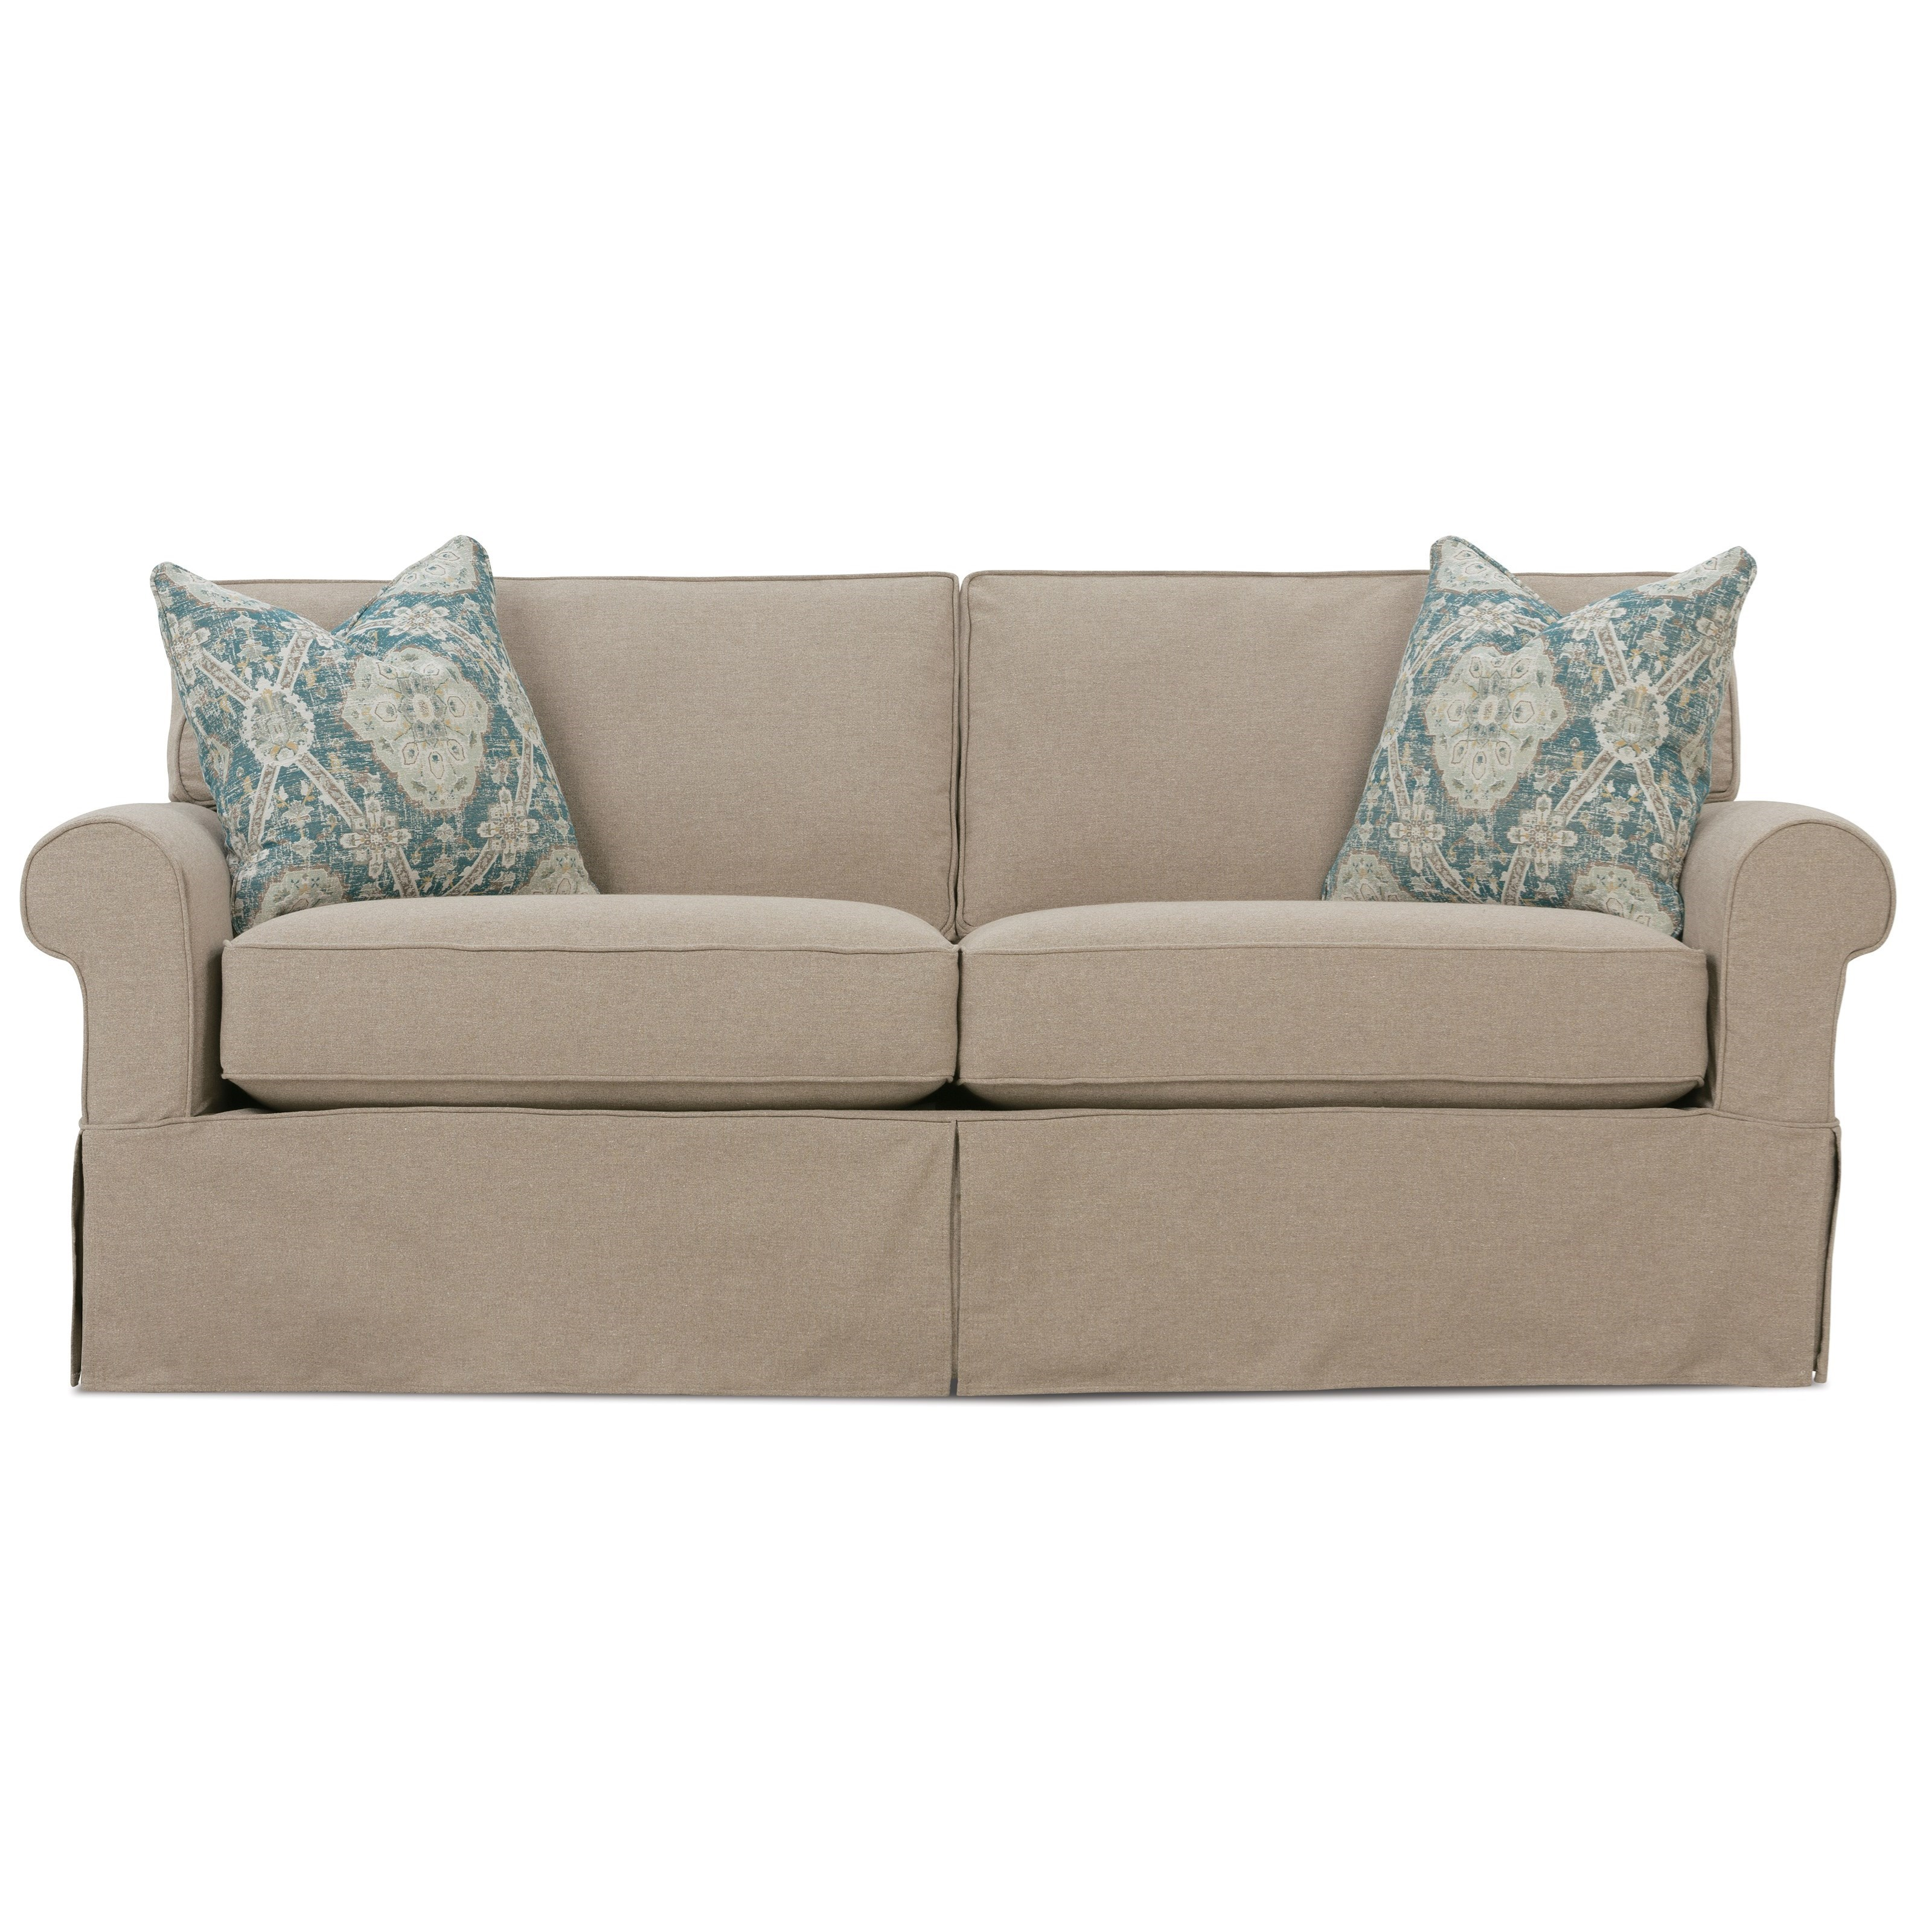 2 seater recliner sofa covers the english company uk rowe nantucket a910r 000 casual seat slipcover